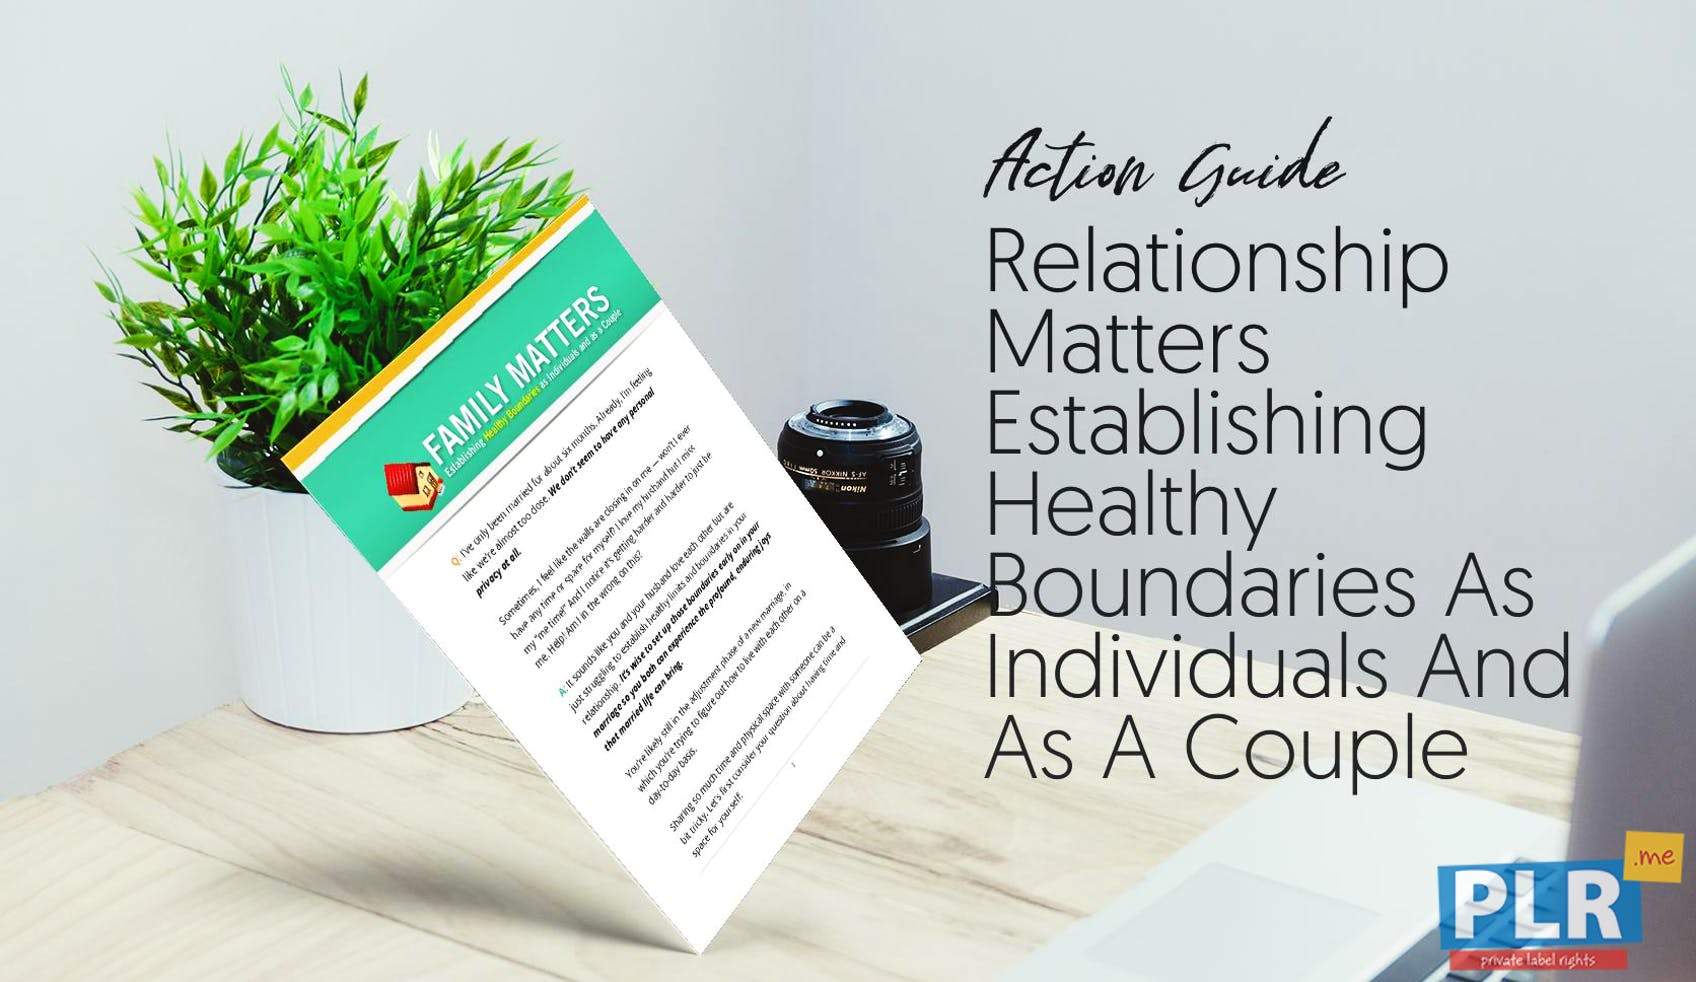 Relationship Matters Establishing Healthy Boundaries As Individuals And As A Couple